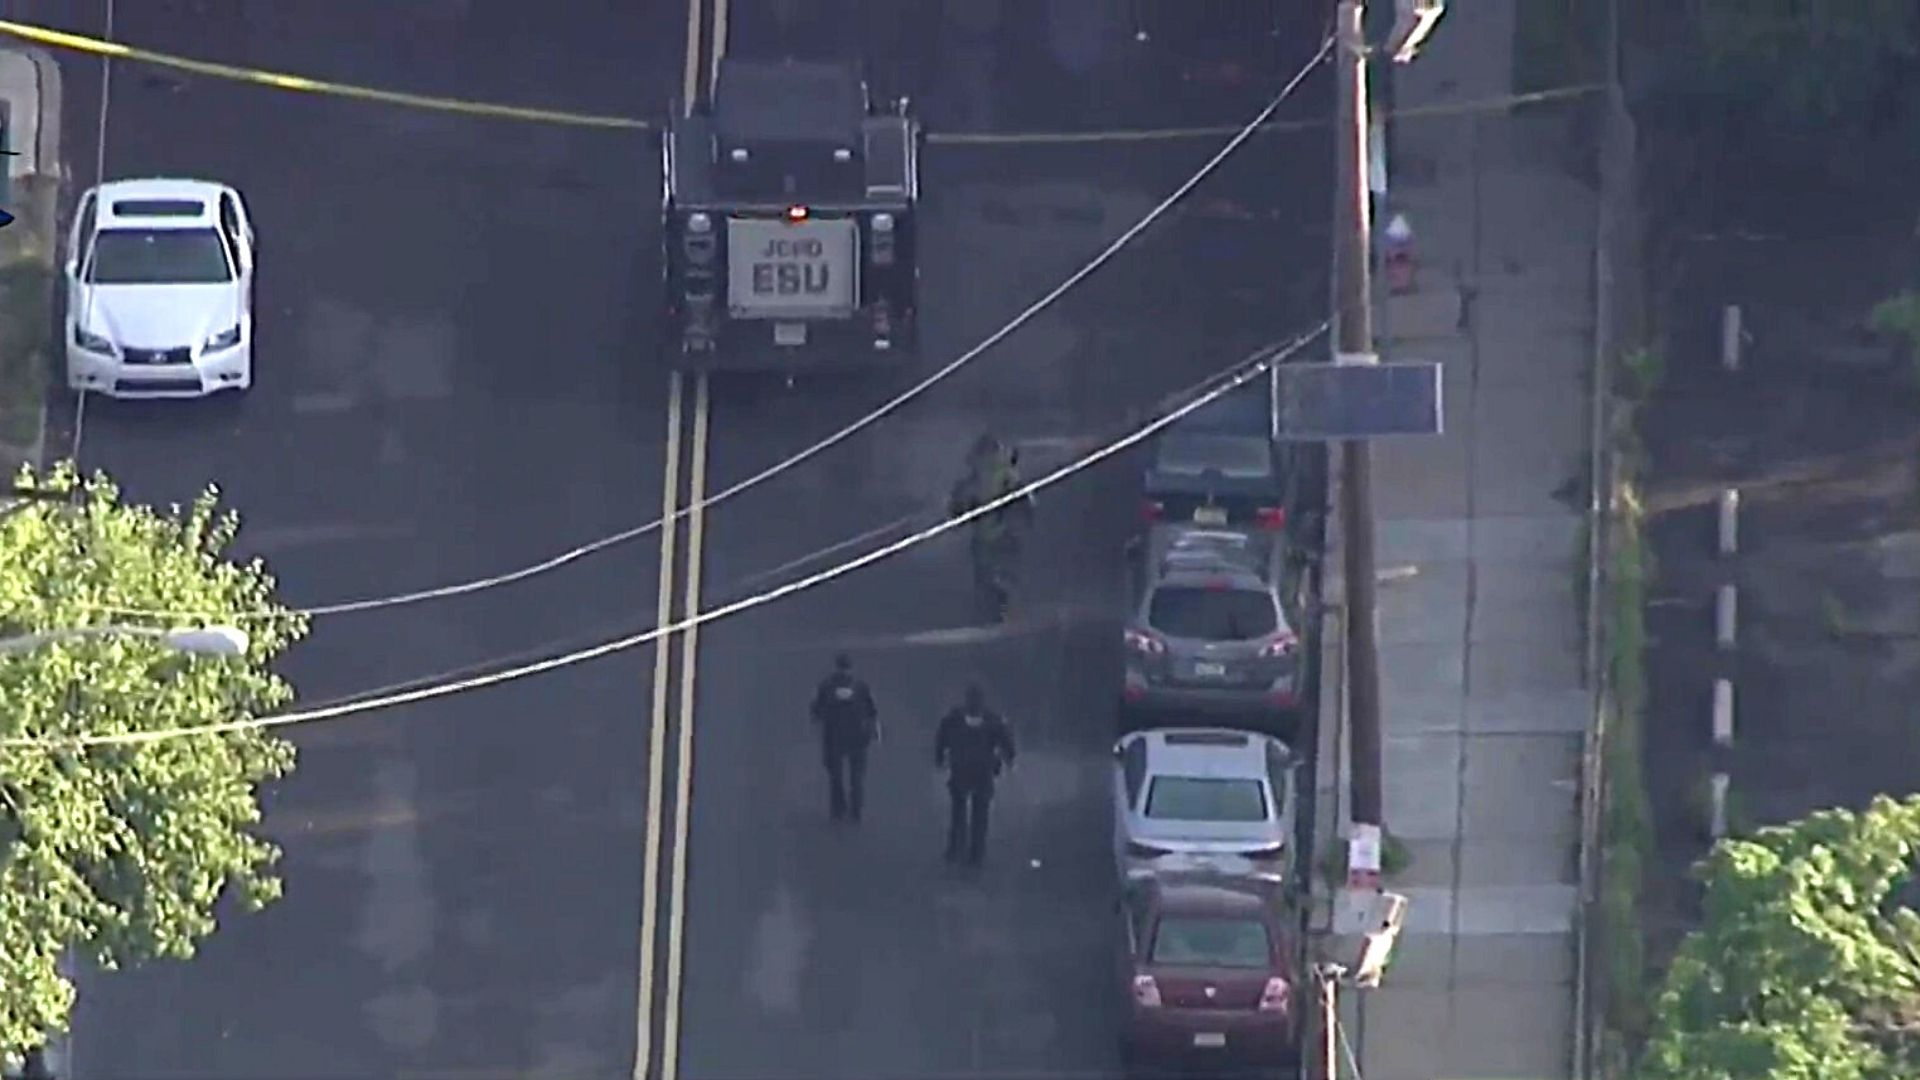 Police investigate suspicious package near NJ Transit tracks in Jersey City